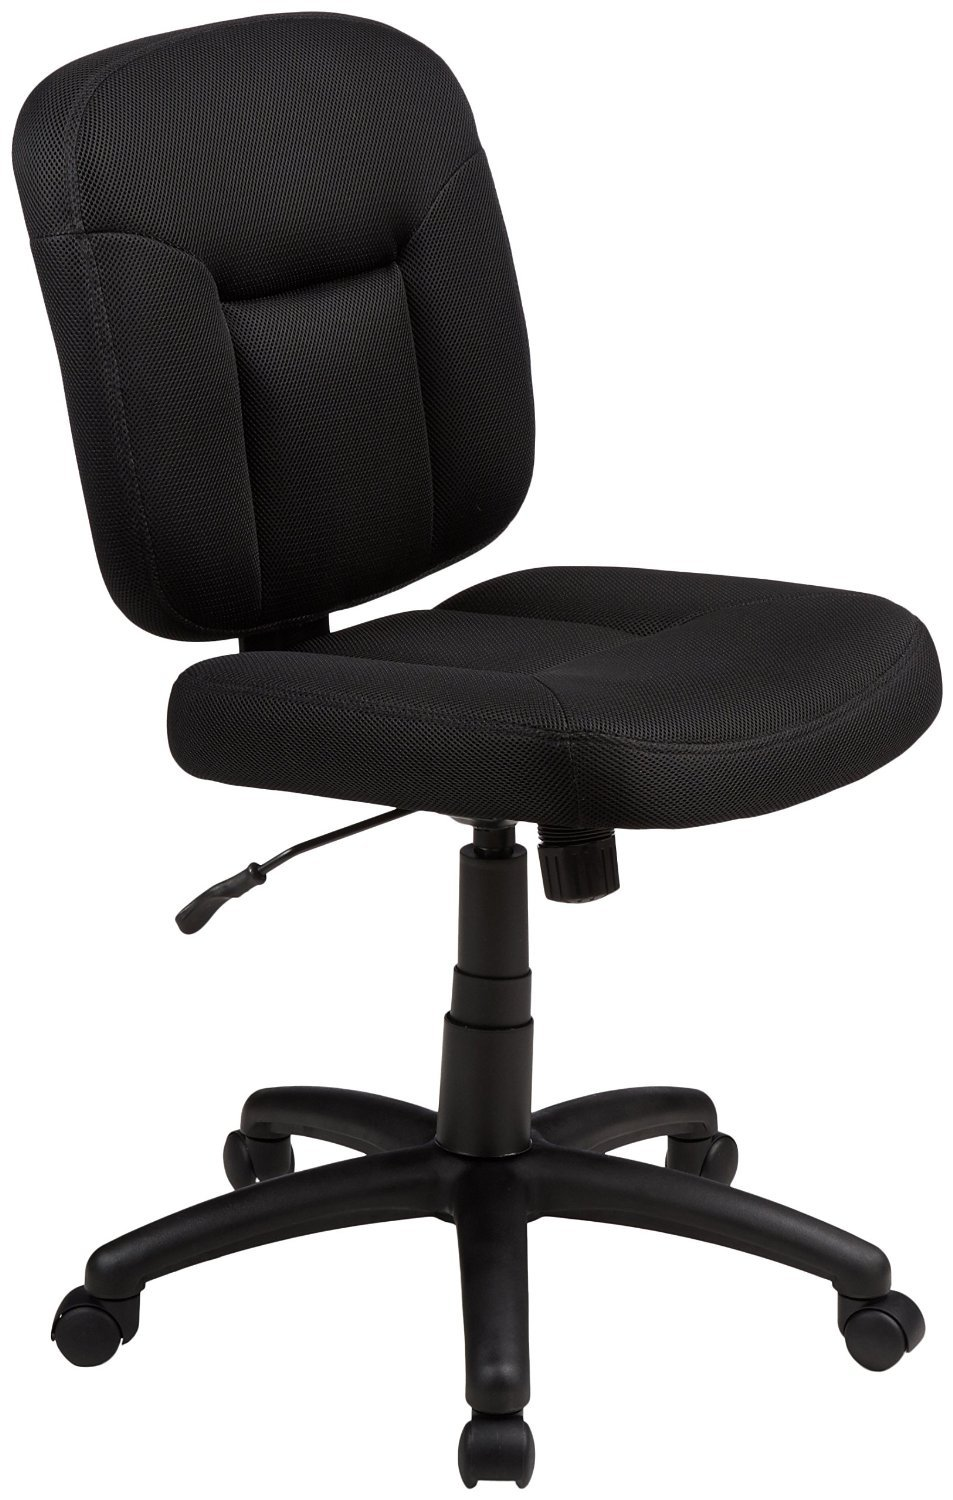 AmazonBasics Low-Back Task Chair with Swivel Casters - Black